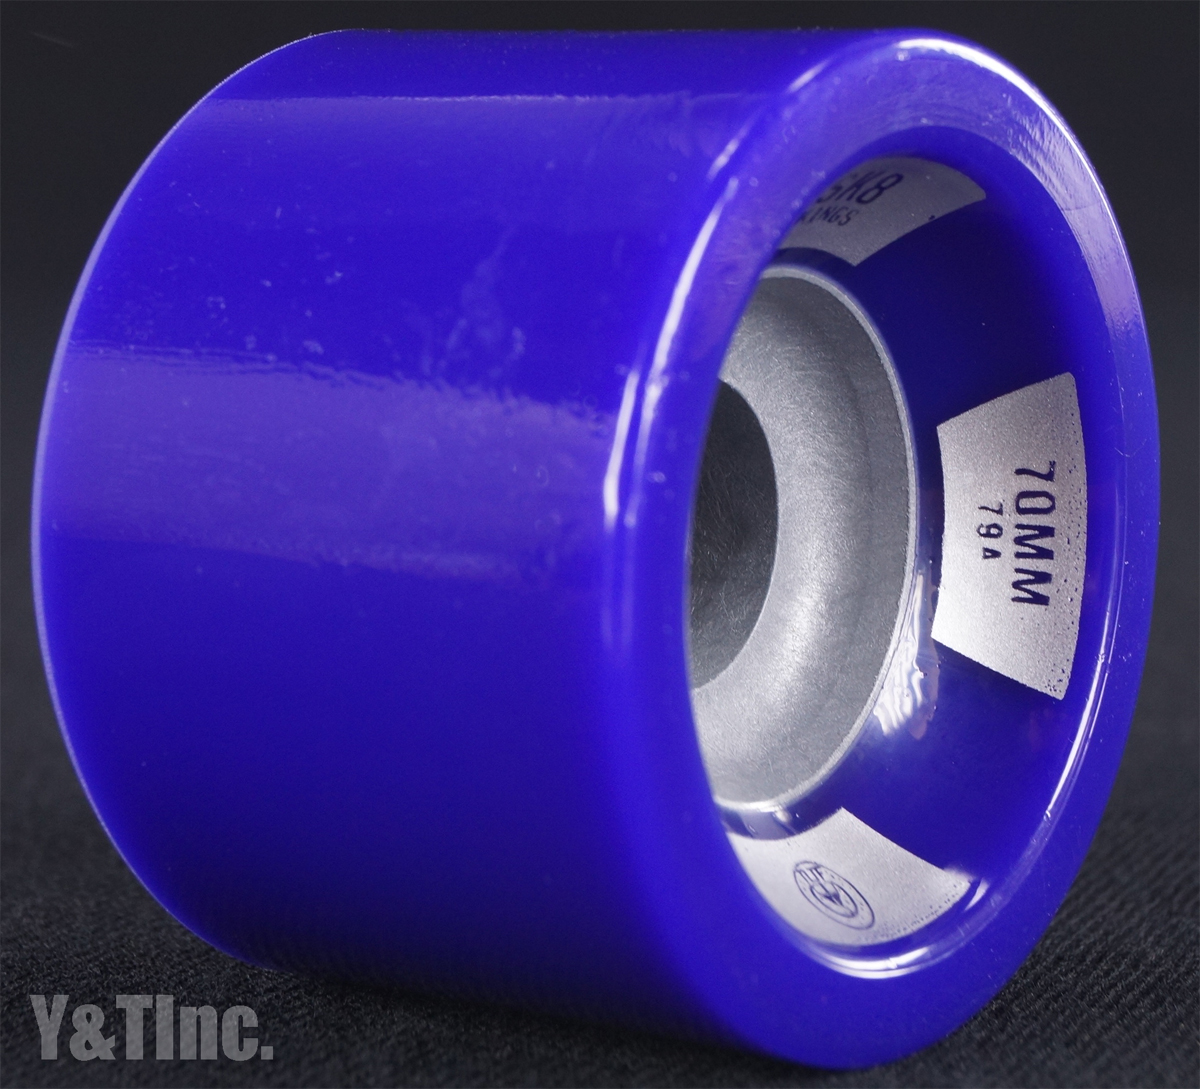 SK8KINGS 70mm 79a TURBO COMPOSITE CORE 1